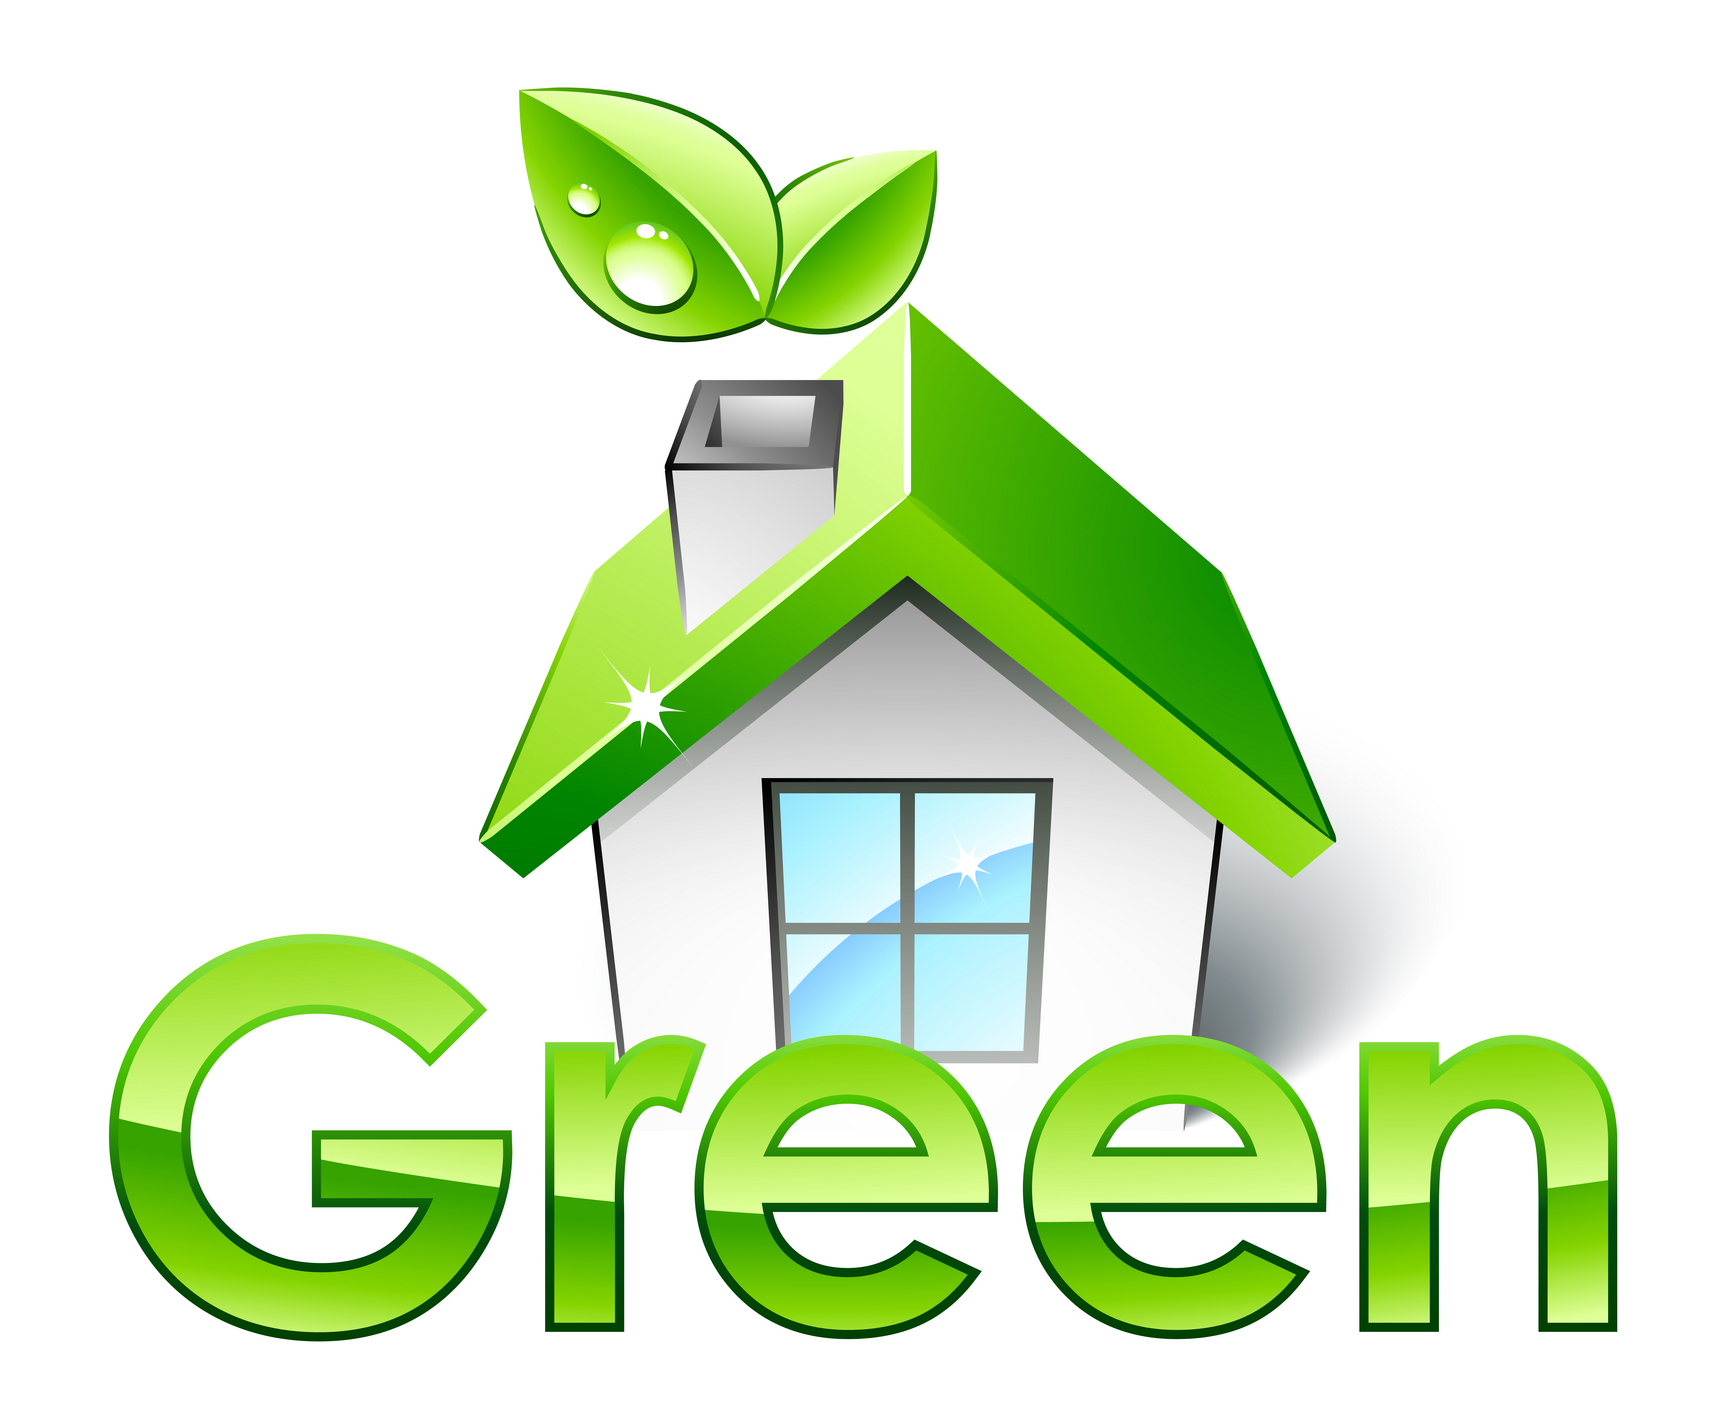 Clipart on save energy save environment png transparent stock Clipart on save energy save environment - ClipartFest png transparent stock